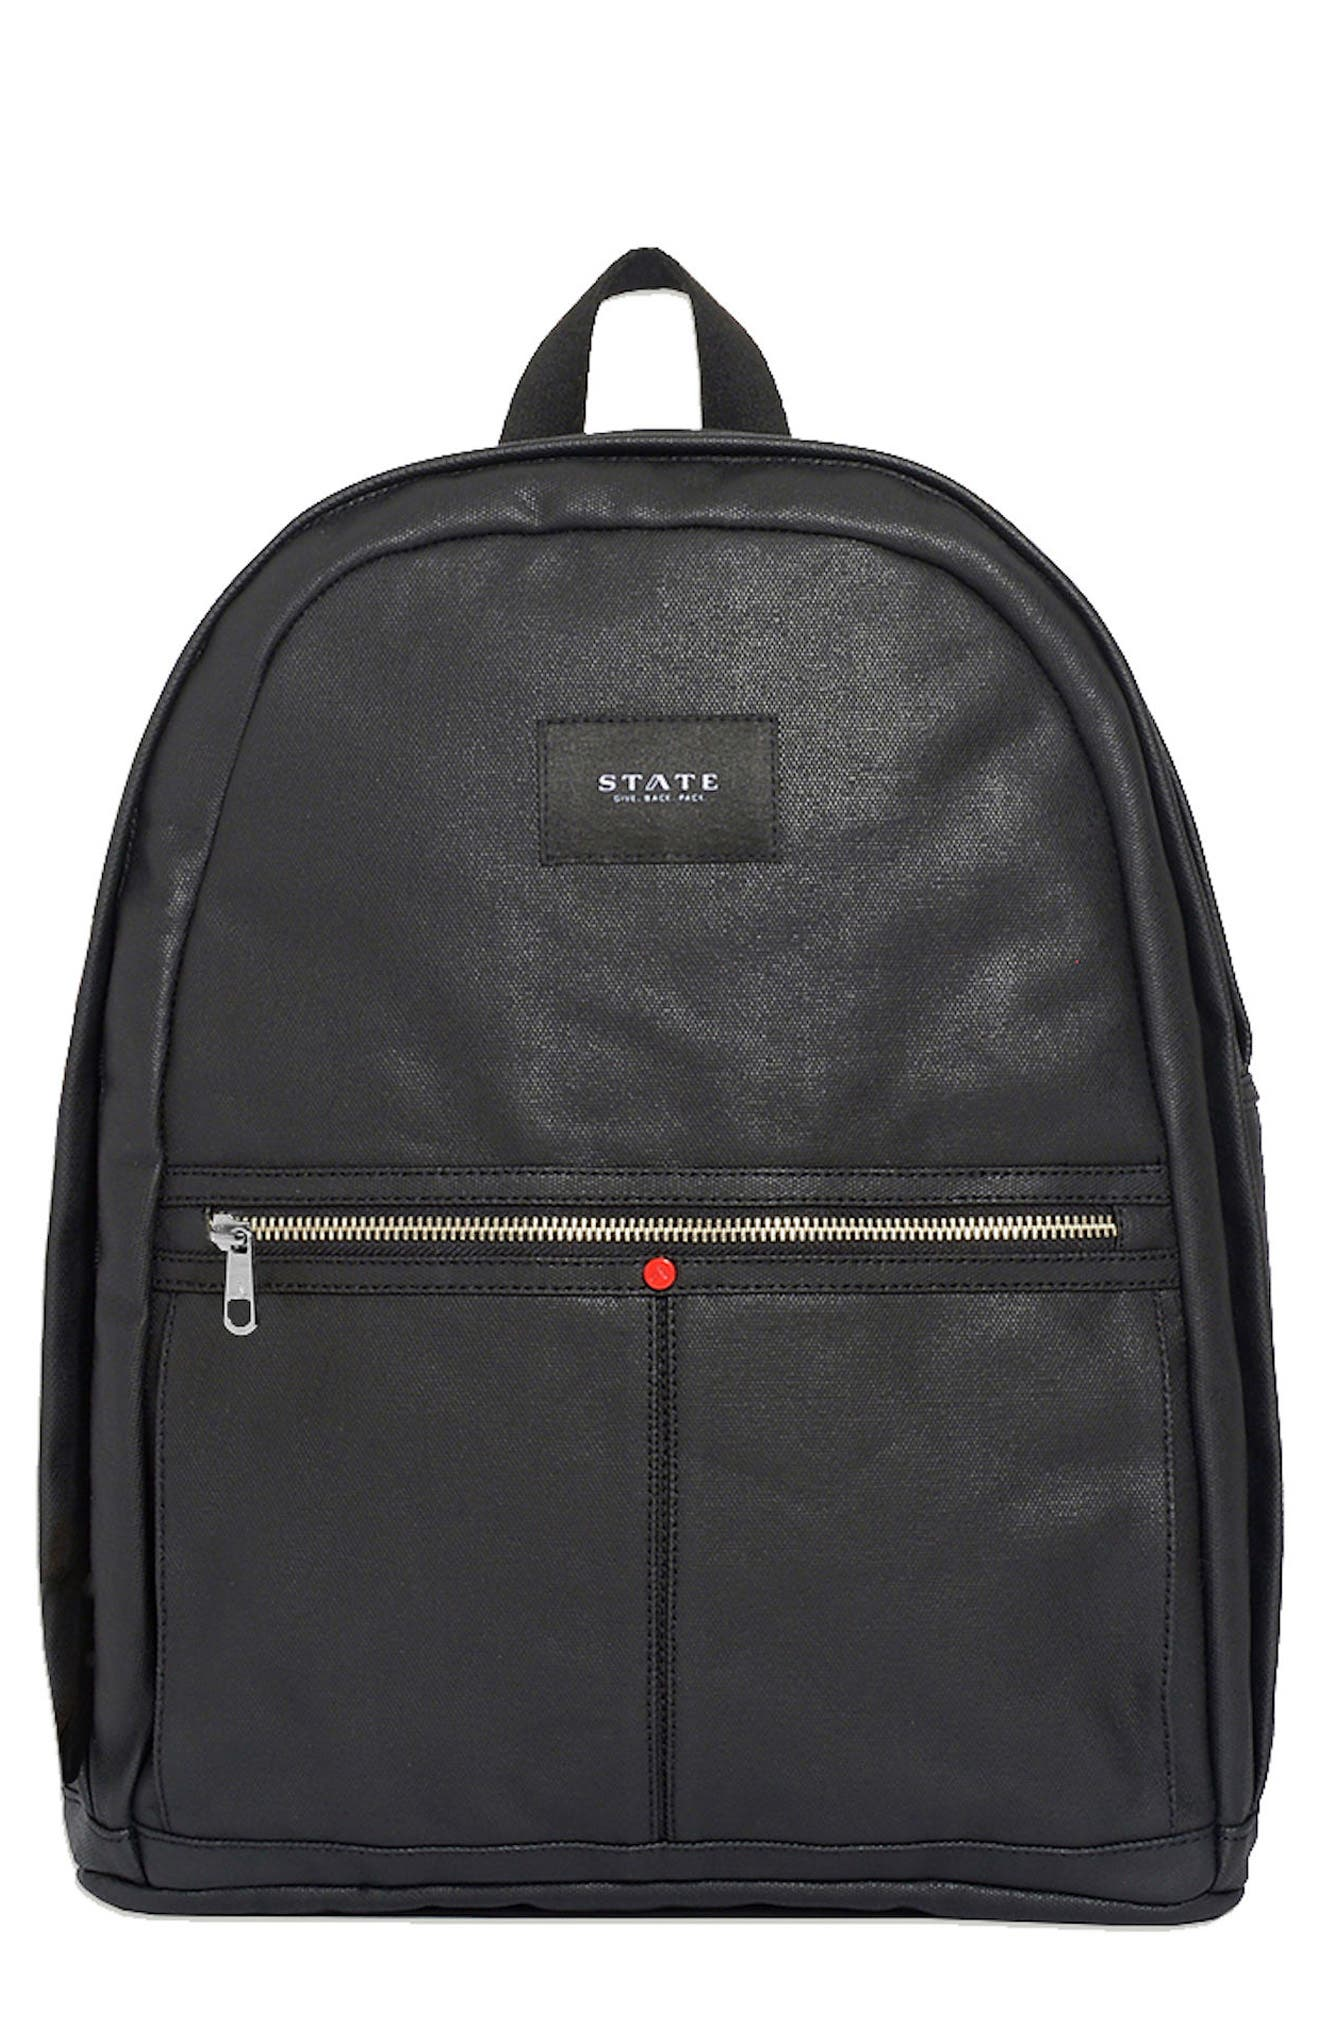 Greenpoint Kent Backpack,                             Main thumbnail 1, color,                             Black